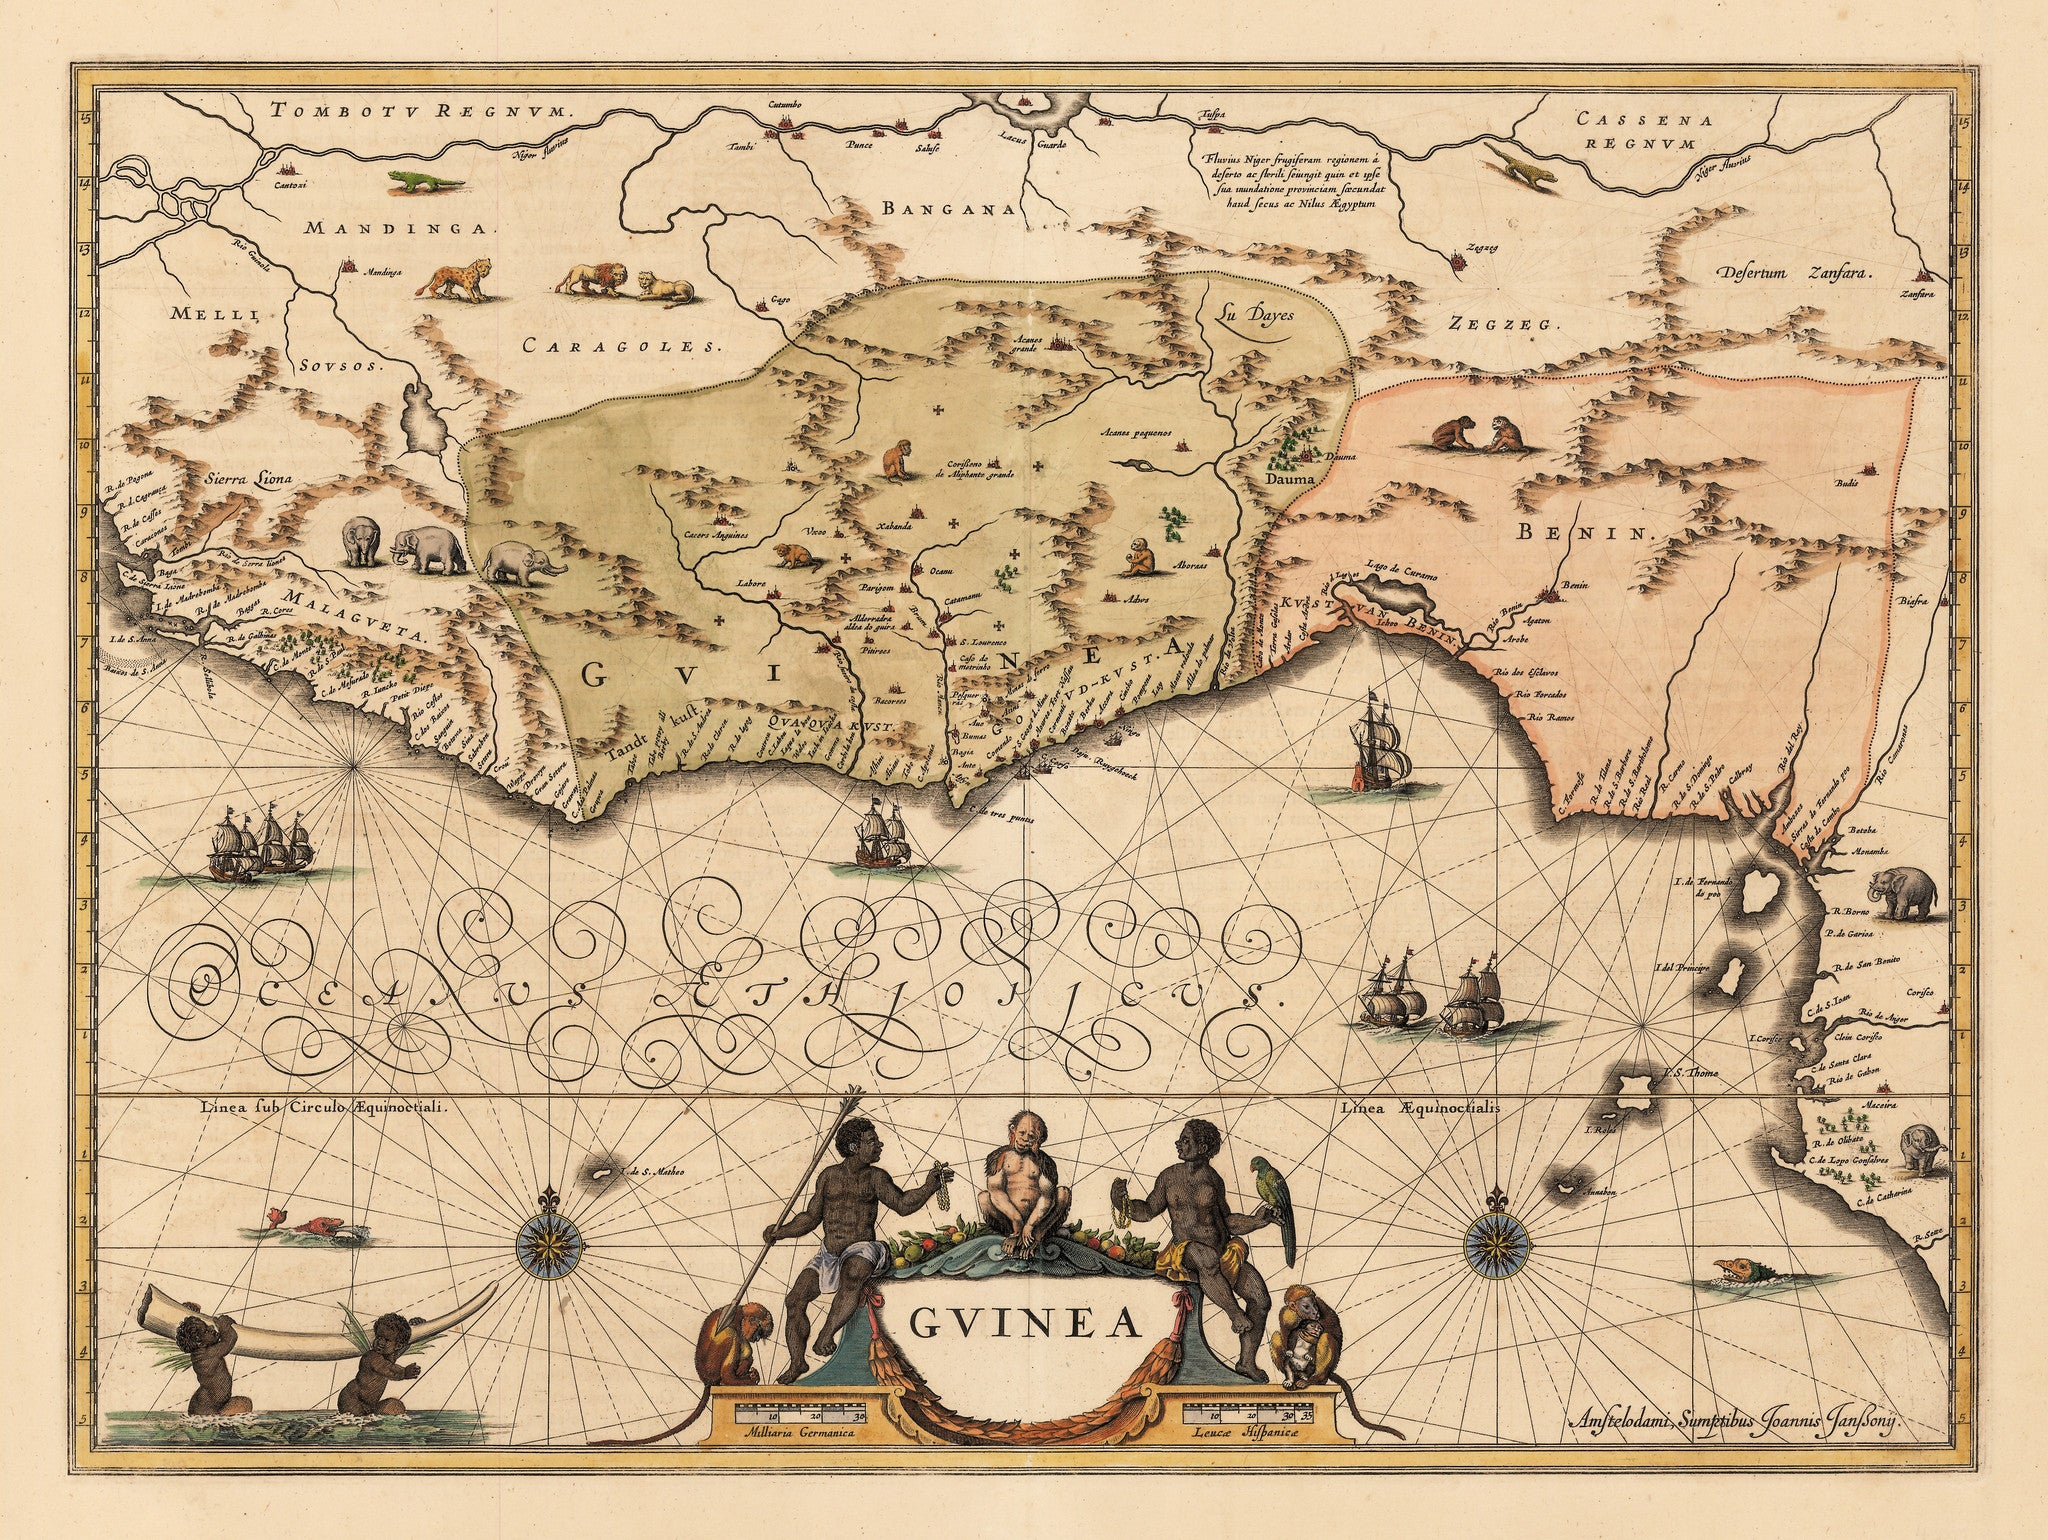 Authentic Antique Map of Guinea or West Africa: Guinea  By: Jan Jansson  Date 1640 (published) Amsterdam